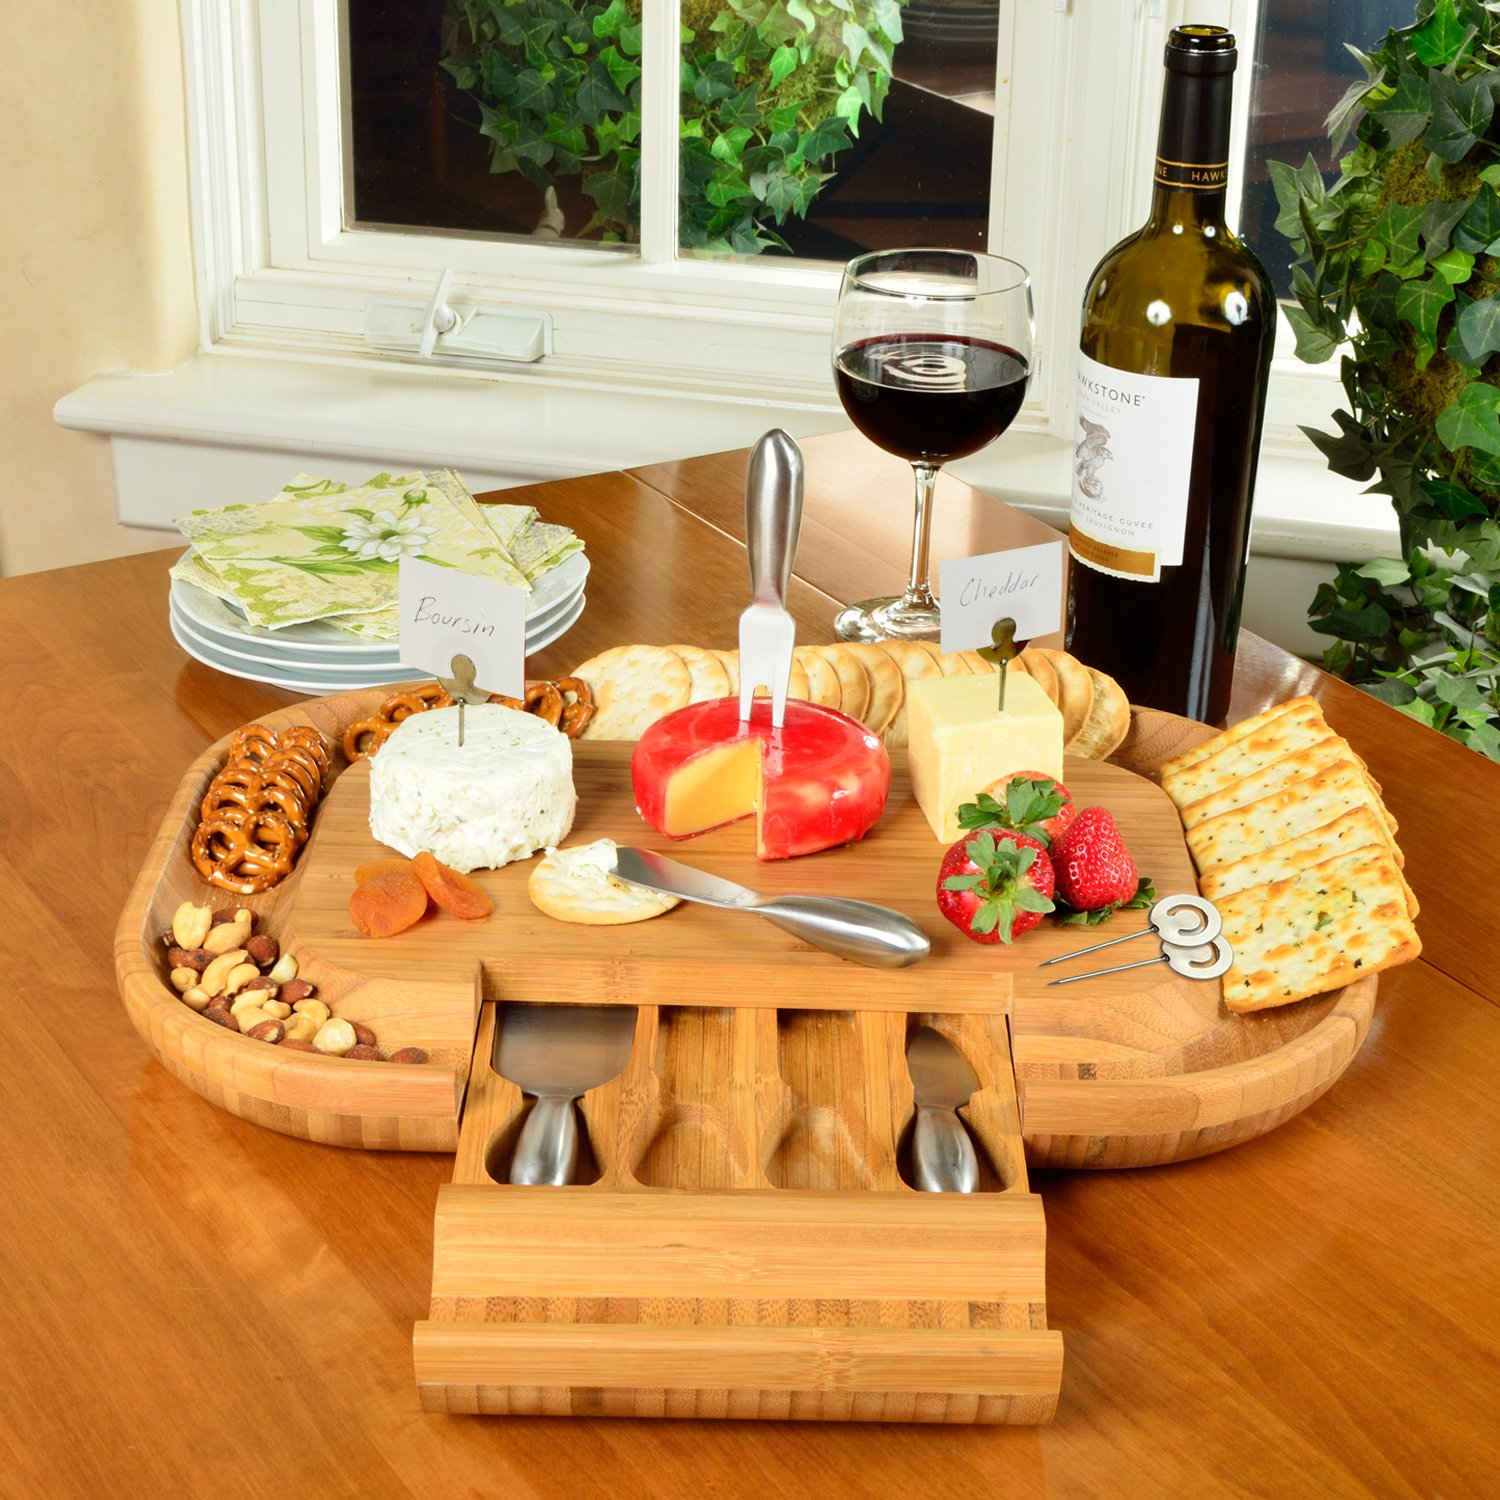 Picnic at Ascot -The''Original'' Large Bamboo Cheese Board with Cracker Groove & Integrated Drawer with 4 Piece Knife Set & Cheese Markers- Designed By Picnic at Ascot in the USA by Picnic at Ascot (Image #2)